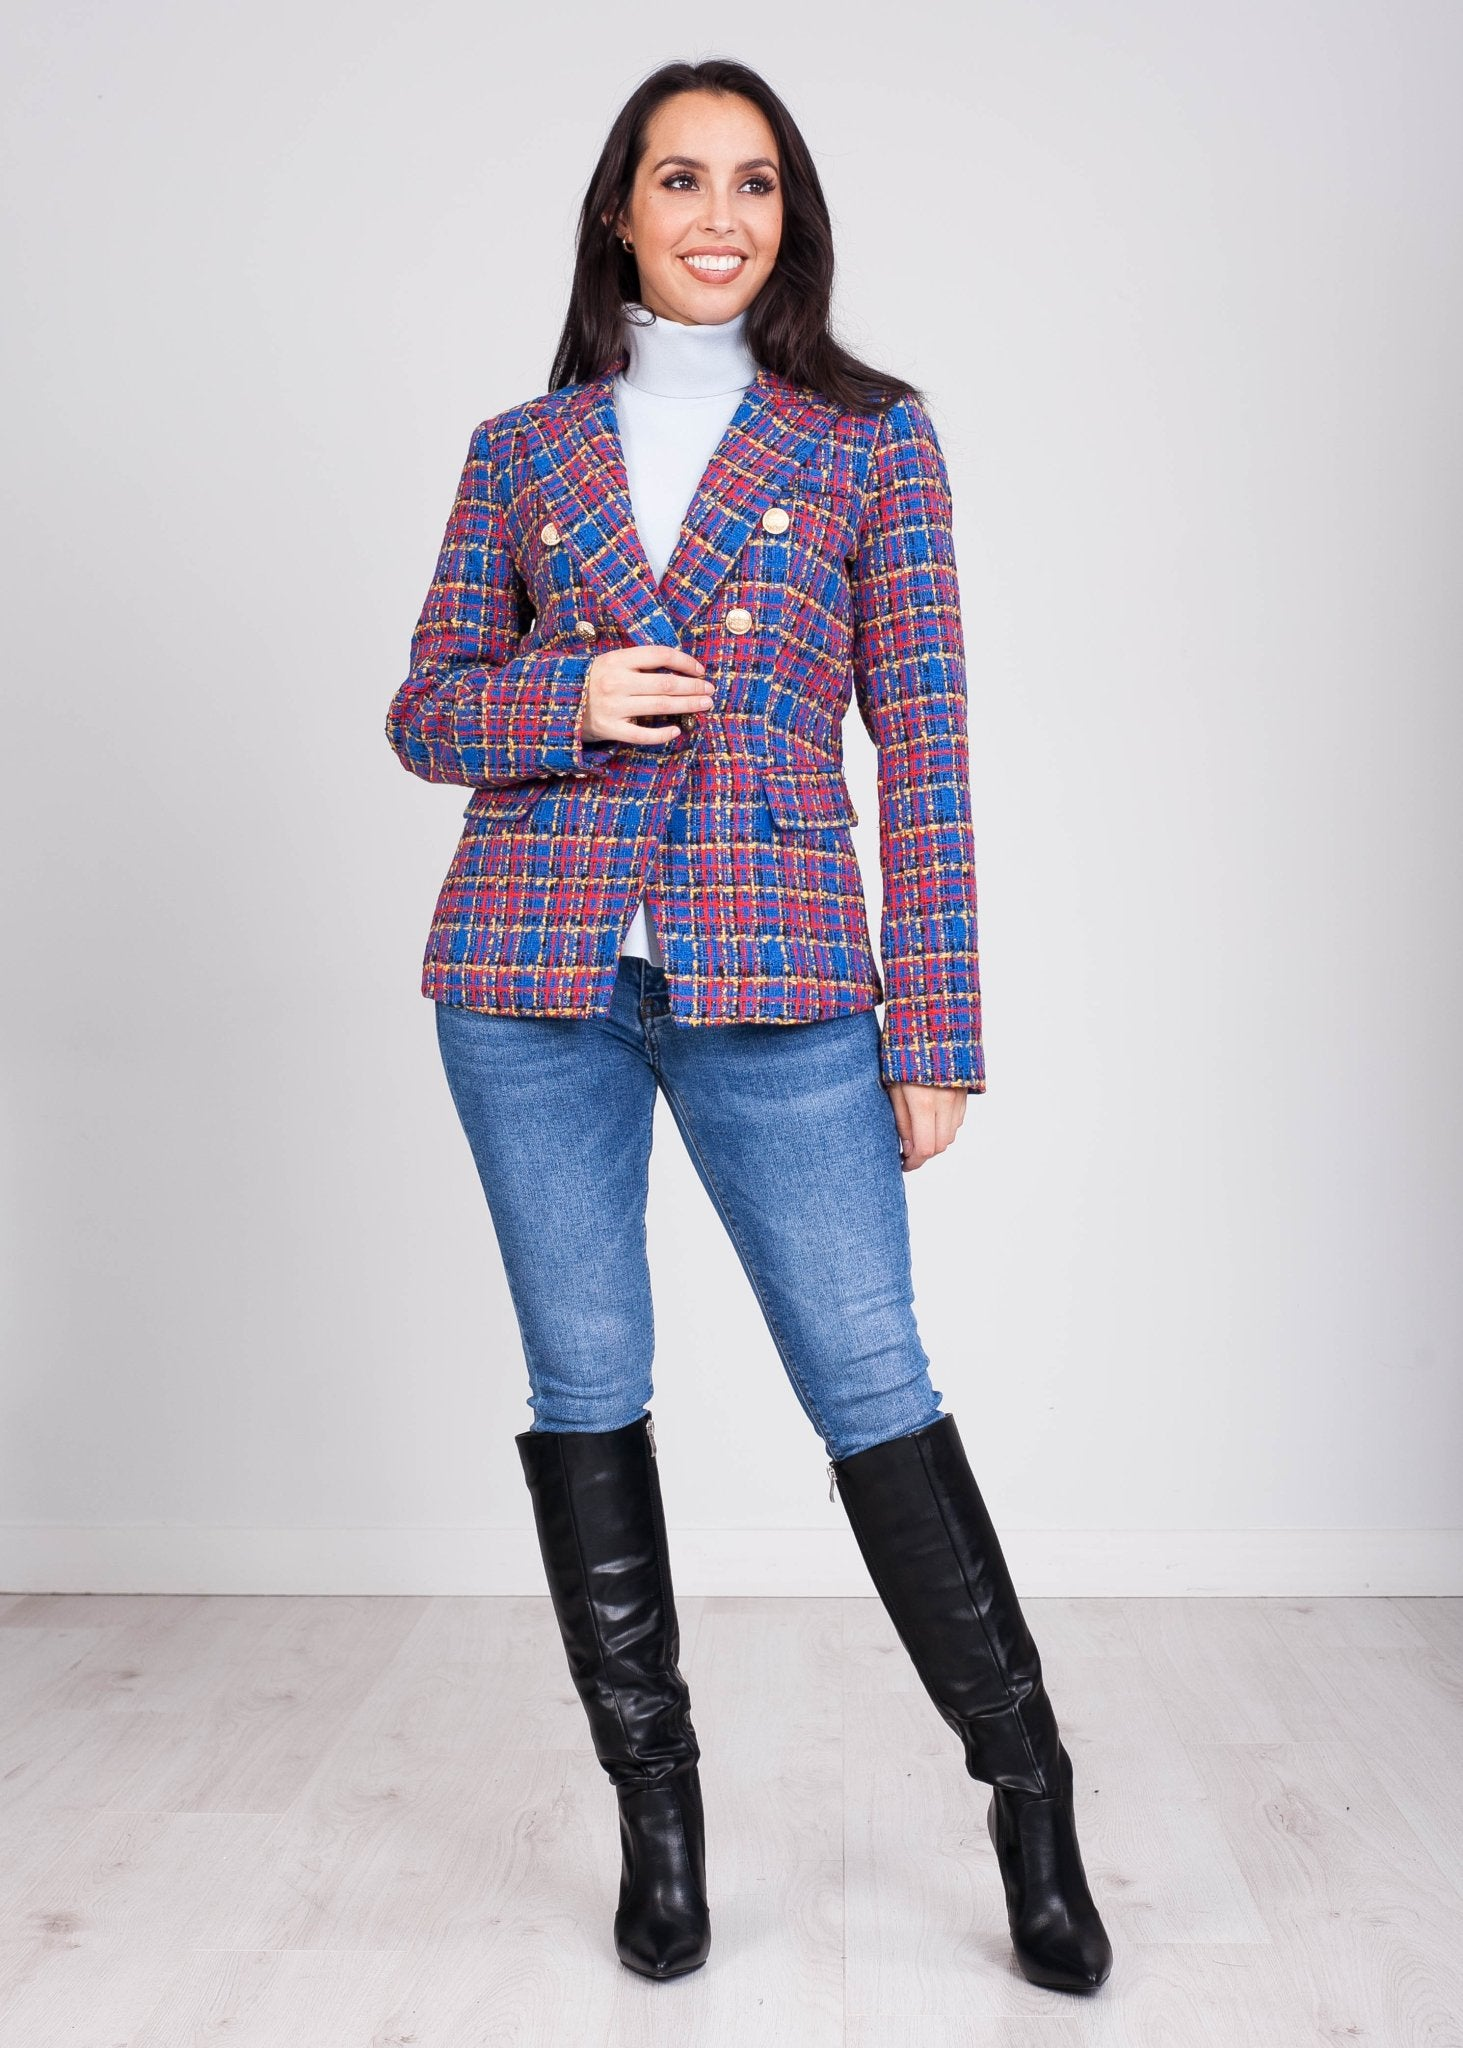 Arabella Royal Blue Tweed Blazer - The Walk in Wardrobe